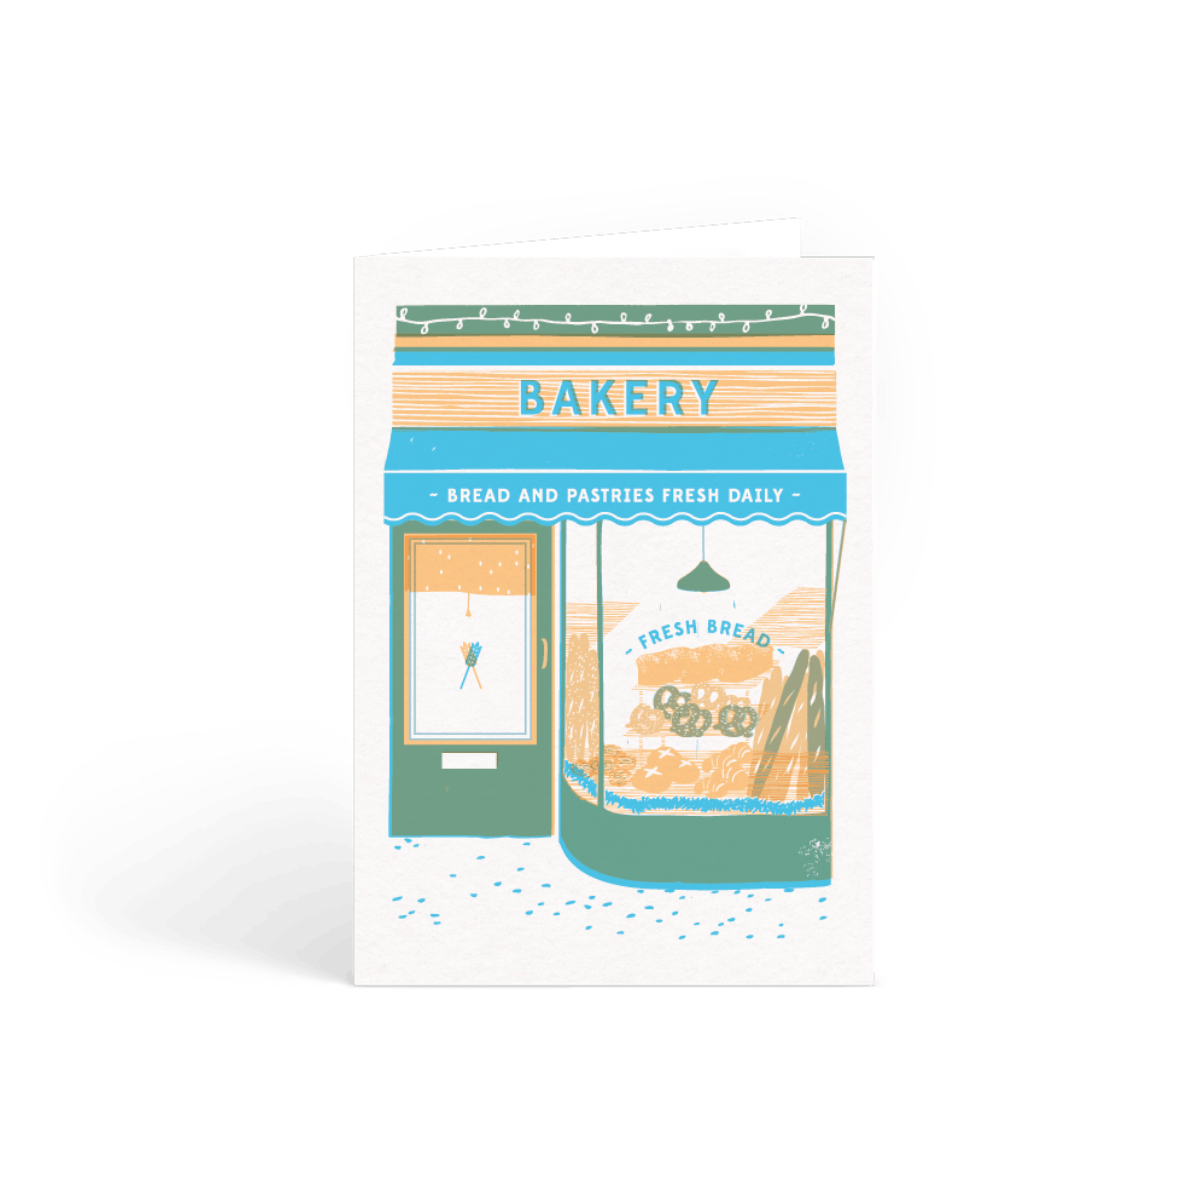 Https%3a%2f%2fwww.papier.com%2fproduct image%2f893%2f2%2fthe bakery 257 front 1453909567.png?ixlib=rb 1.1